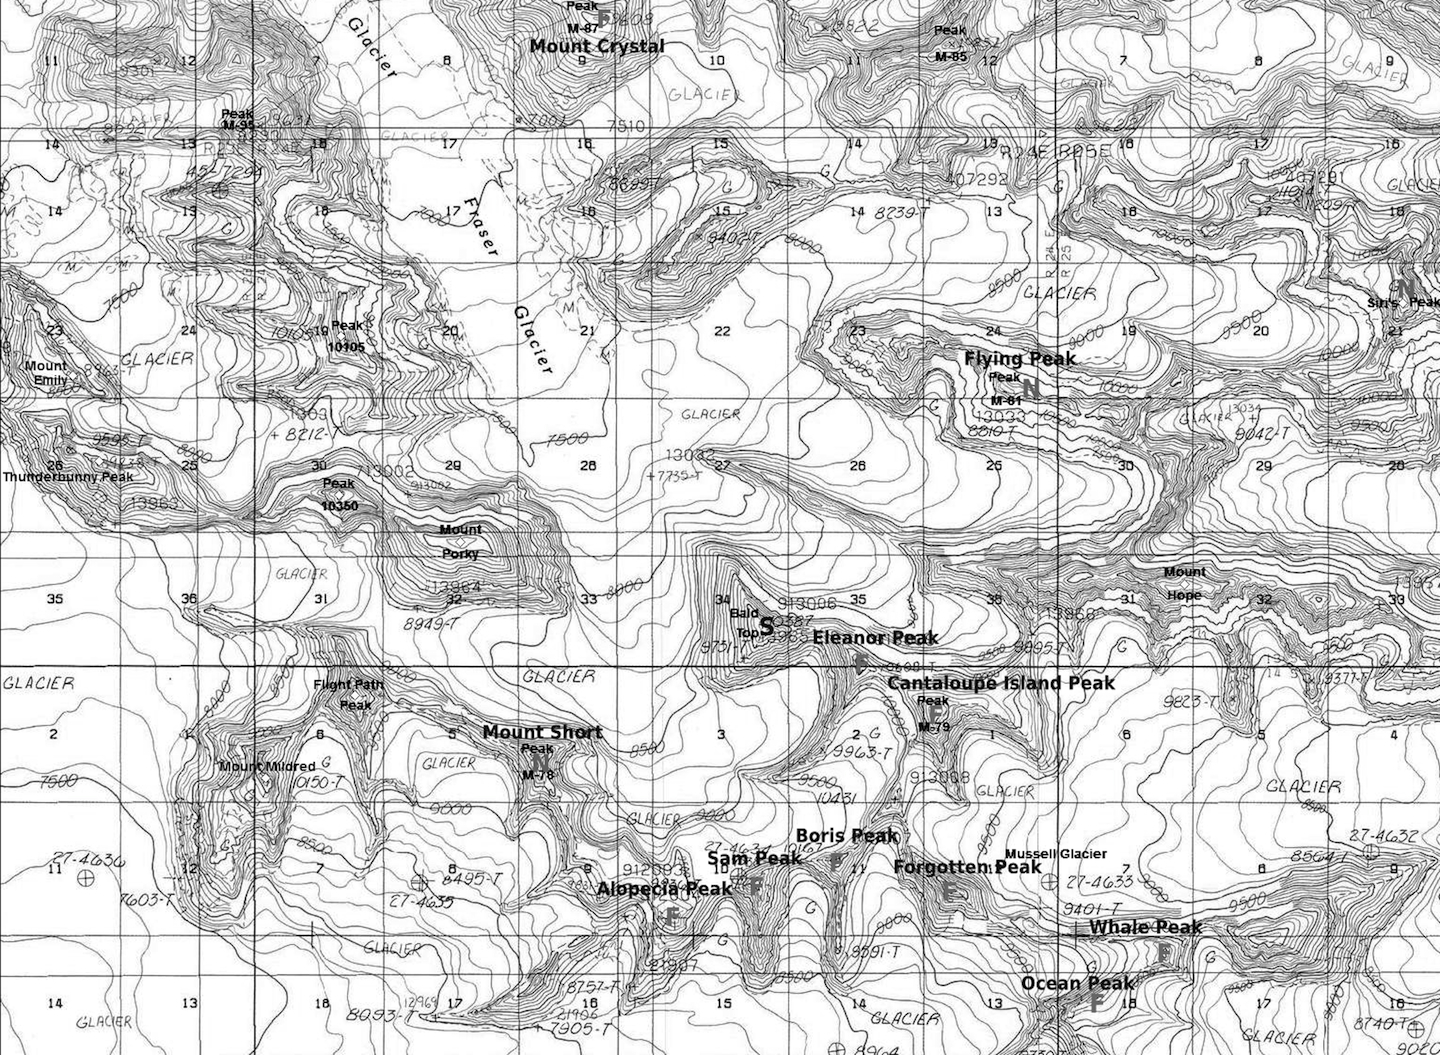 """Fraser and Jefferies Glaciers with first ascents marked by """"F"""", new routes by """"N"""", and other summits by """"S""""."""